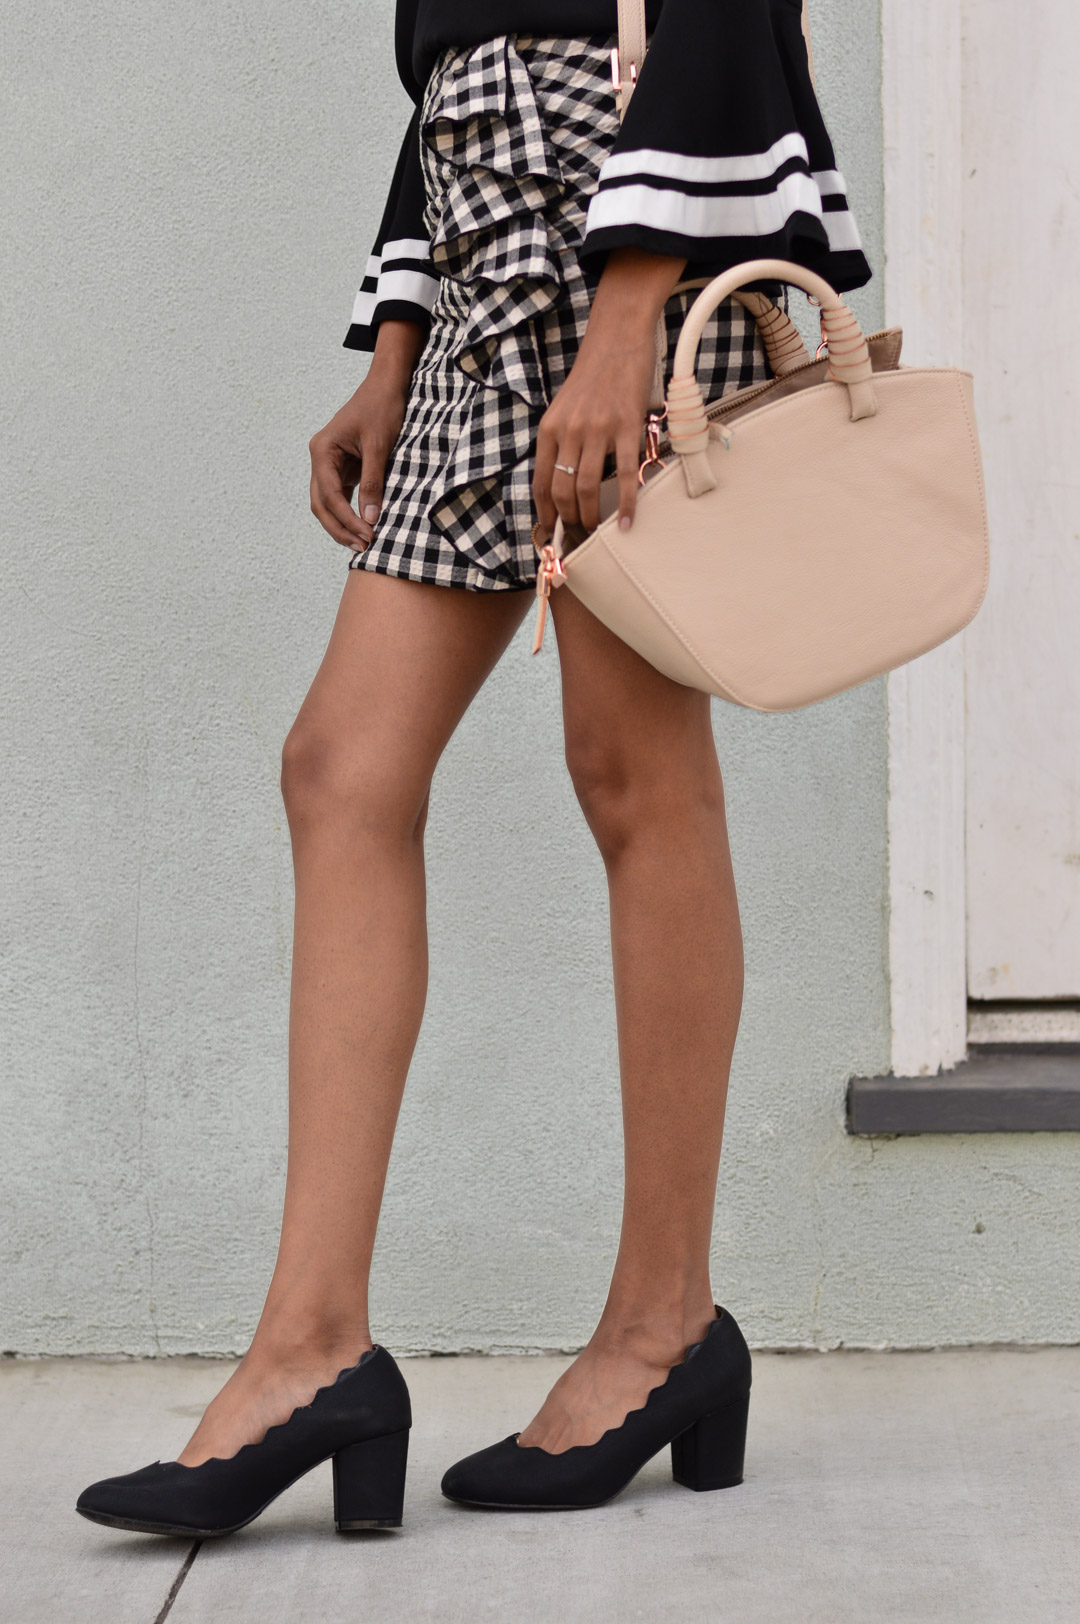 bell-sleeves-gingham-ruffles-fall-style-blogger-outfit 8